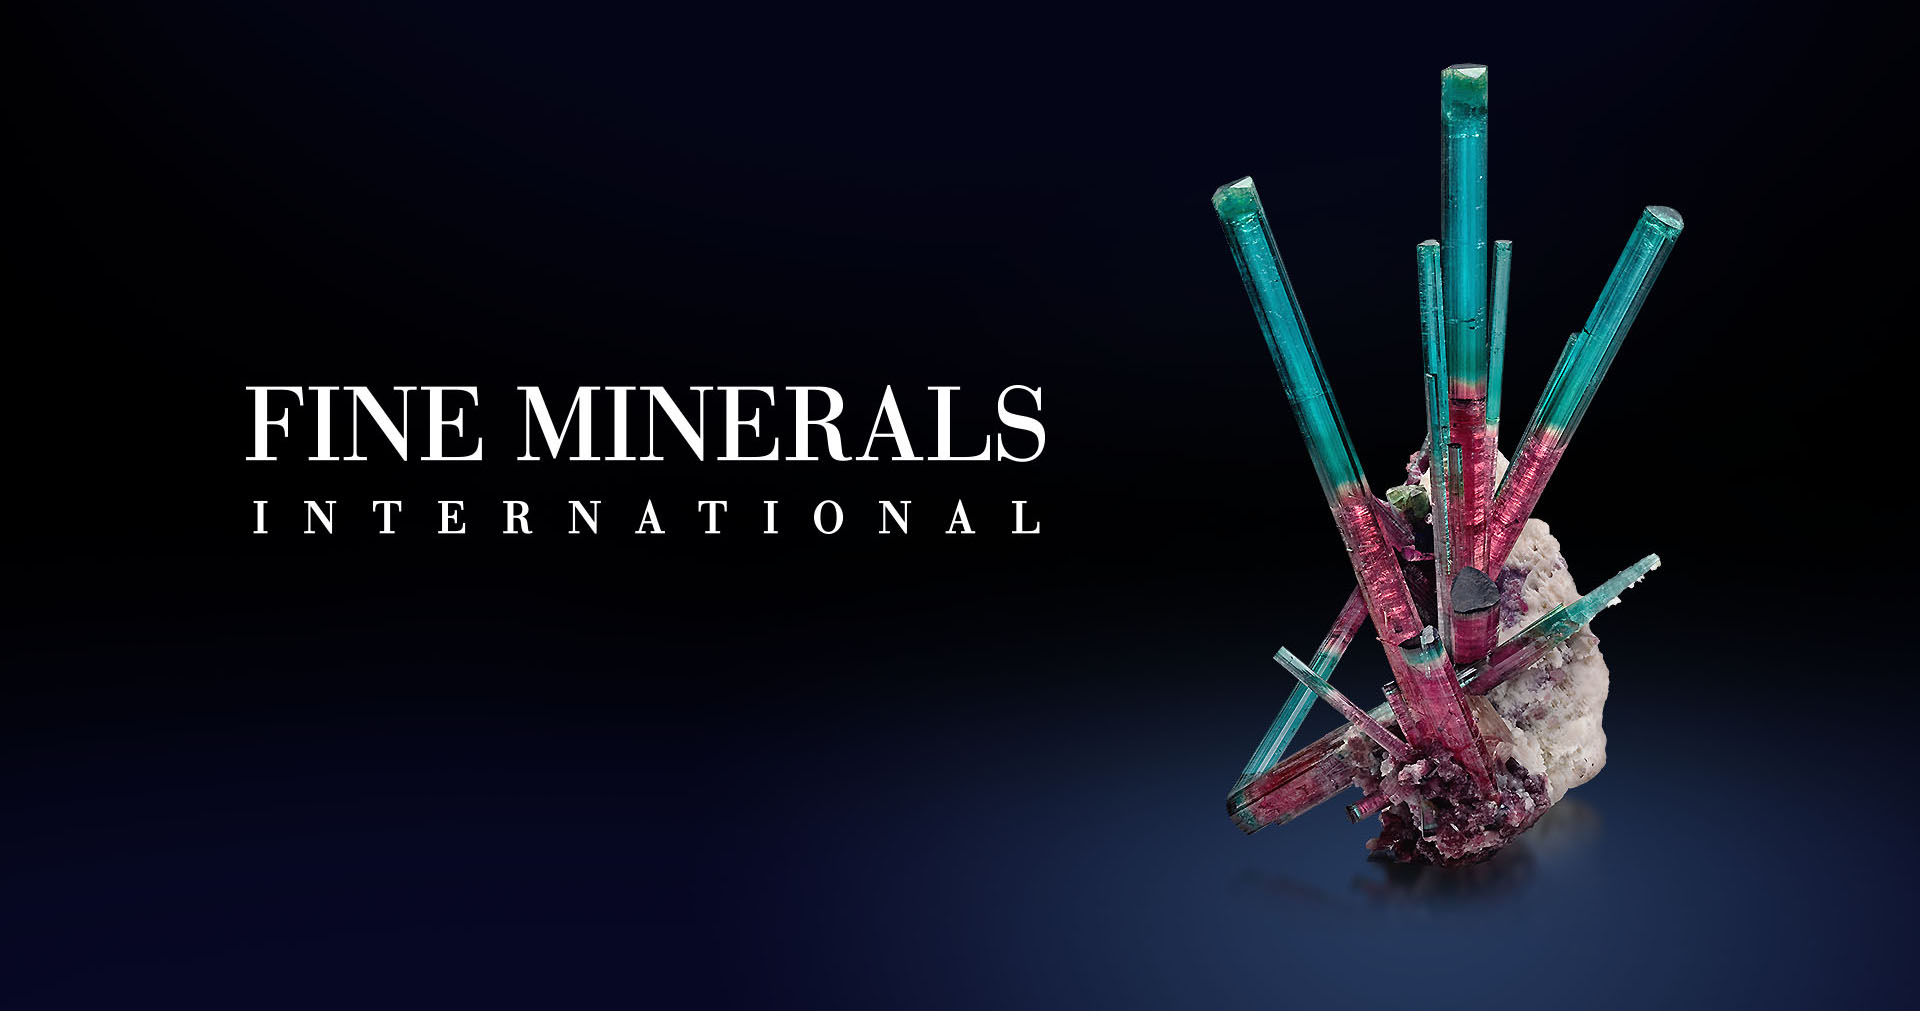 Bi-Color Steel - tourmaline from Pederniera, Brazil